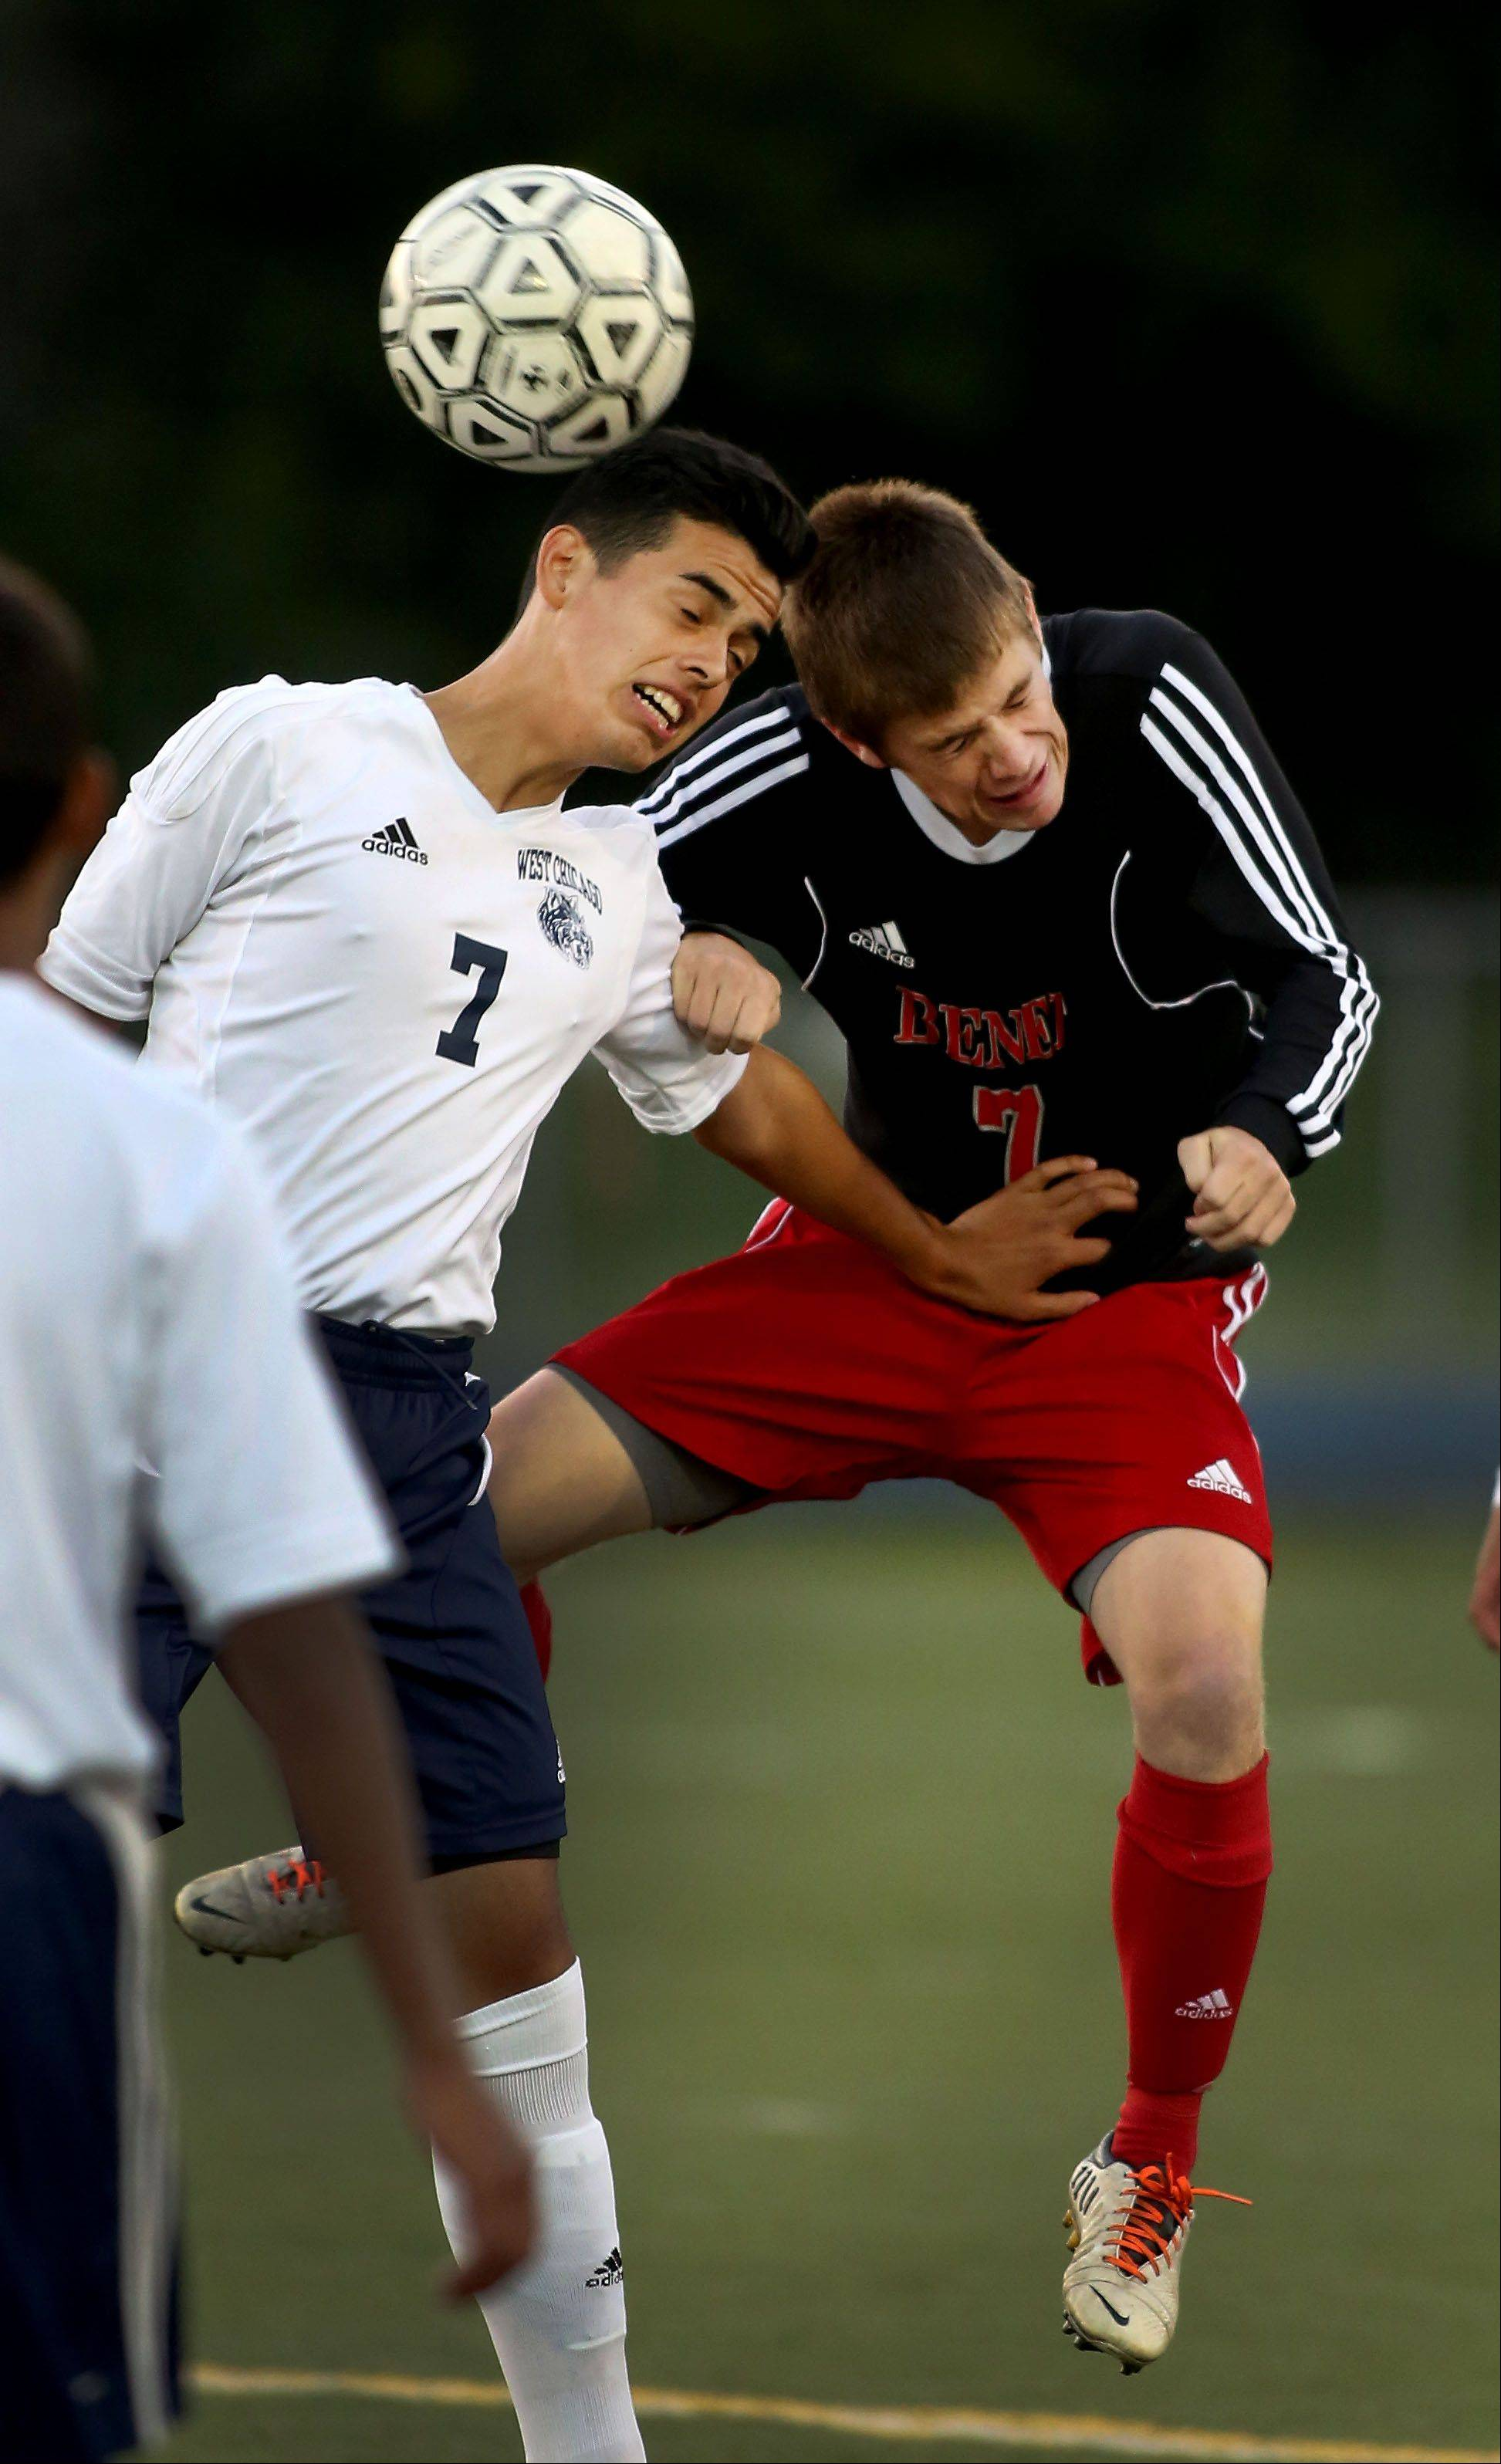 Sam Knapke of Benet Academy, right, heads the ball away from Alexis Quezada of West Chicago during boys soccer action on Monday.